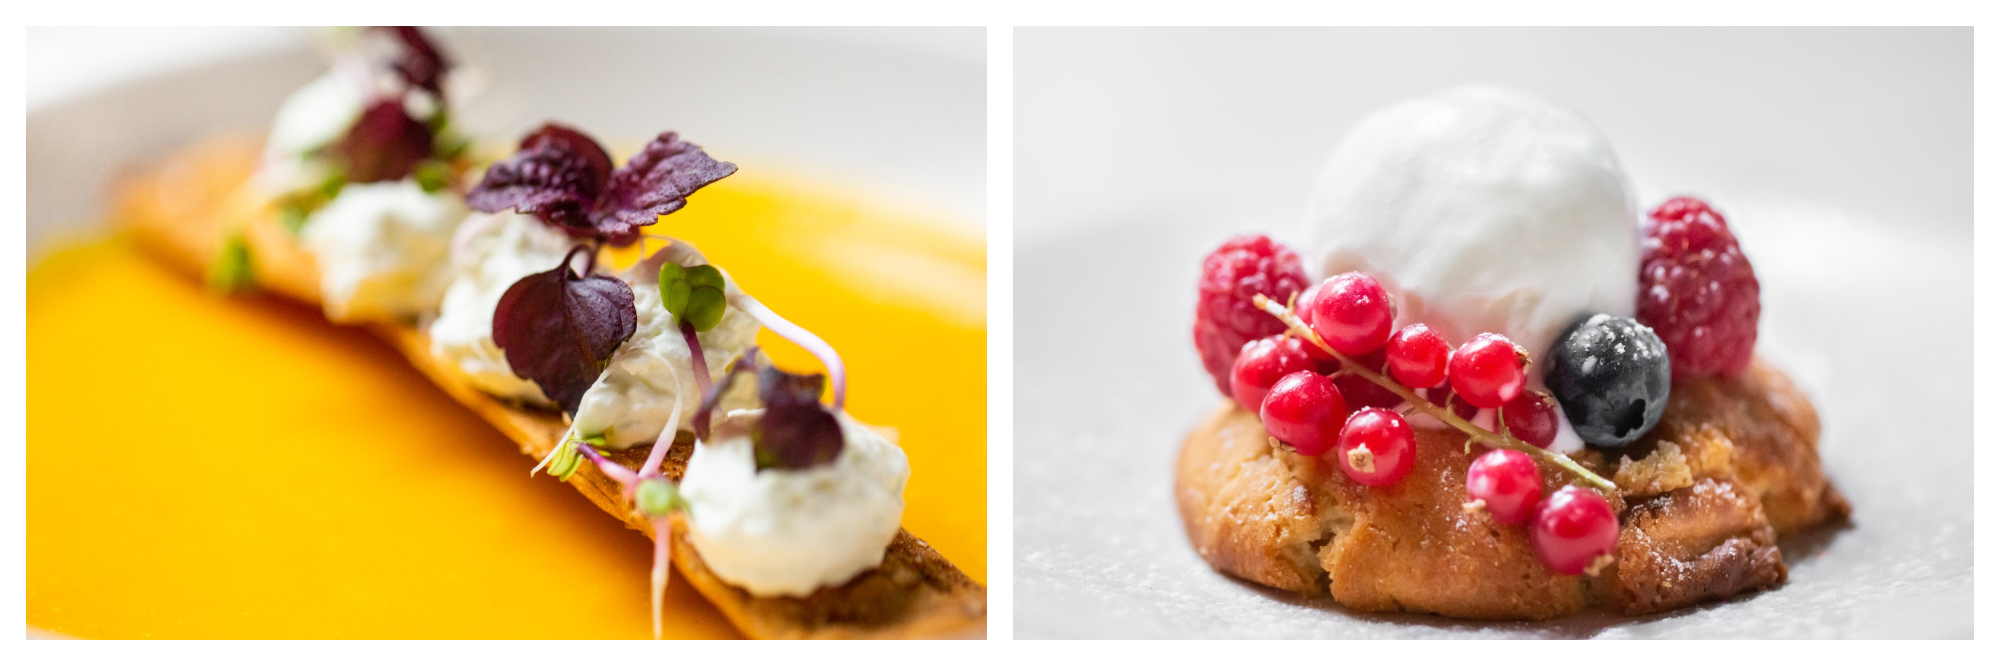 On left: A delicate biscuit sits in a pool of golden fruit coulis, dotted with cream and fresh herbs. On right: A fresh cookie is adorned with a generous scoop of vanilla ice cream and encircled by a crown of fresh, vibrant raspberries, blueberries, and currents.